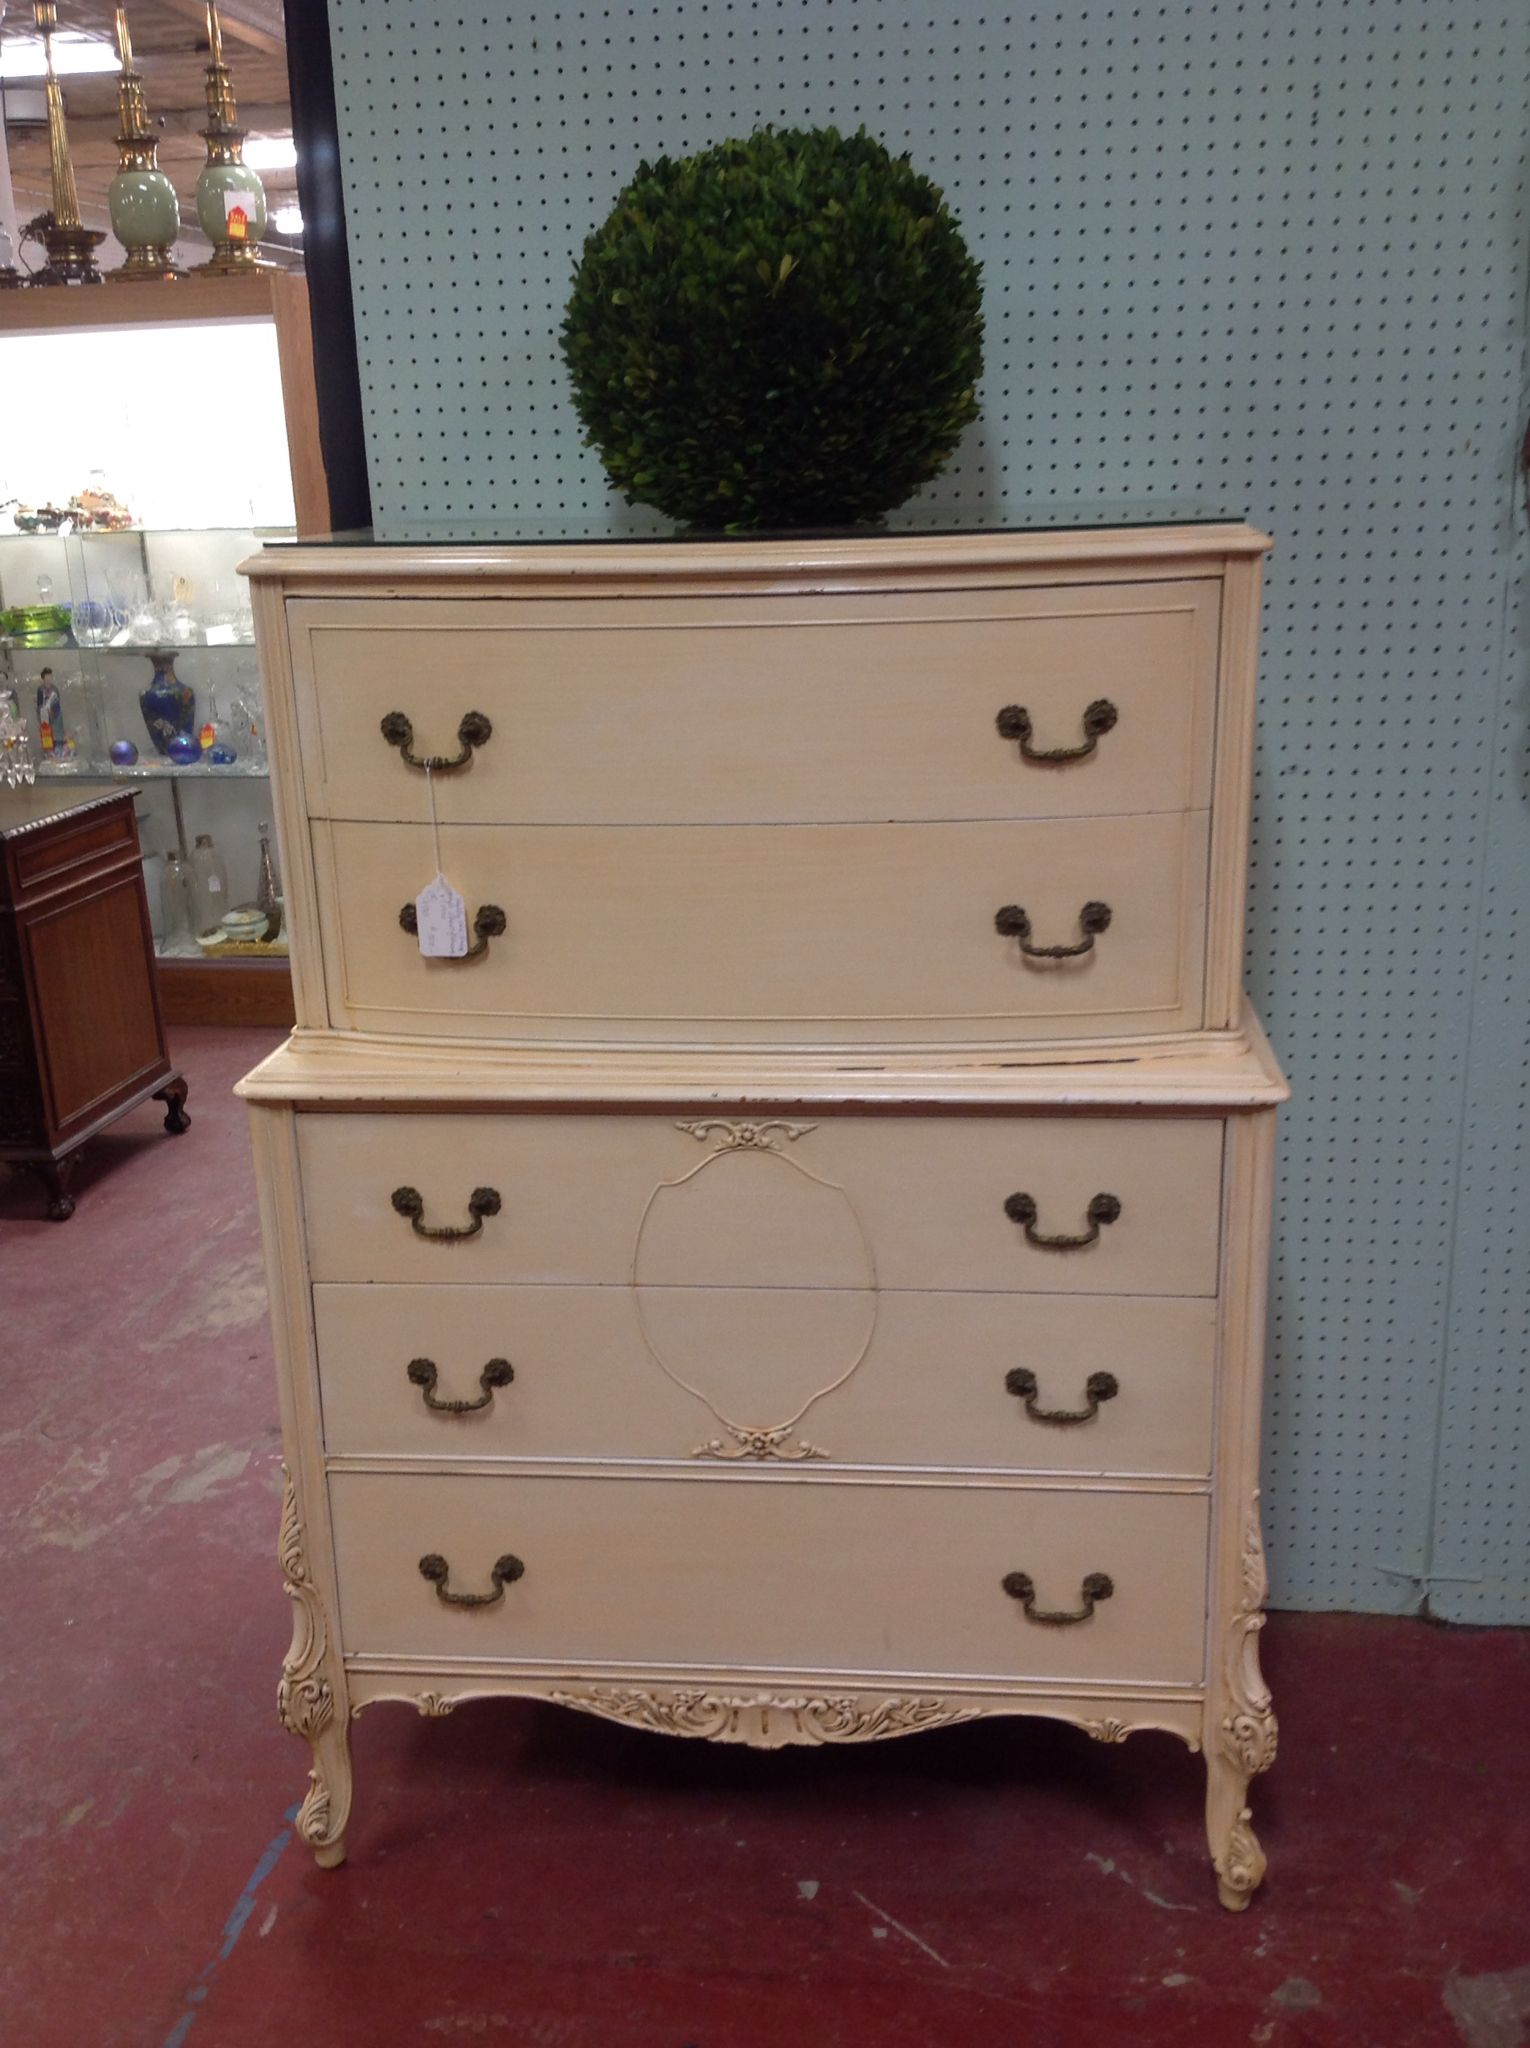 SOLD $350 Vintage antique French style shabby chic chest of